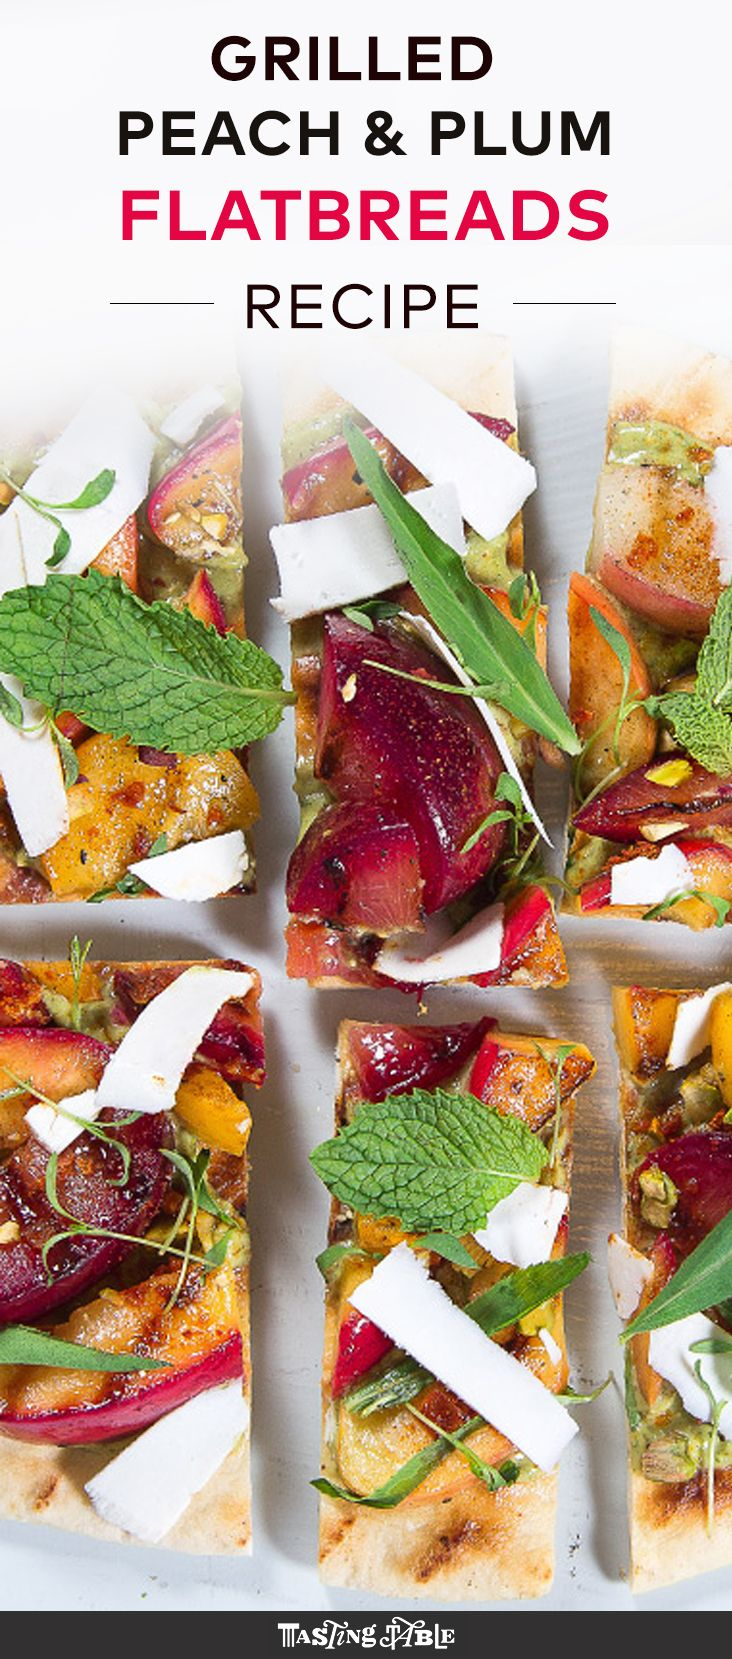 Grilled stone fruit nestled over crisp flatbread with pistachios and mascarpone makes for the brightest summer meal.